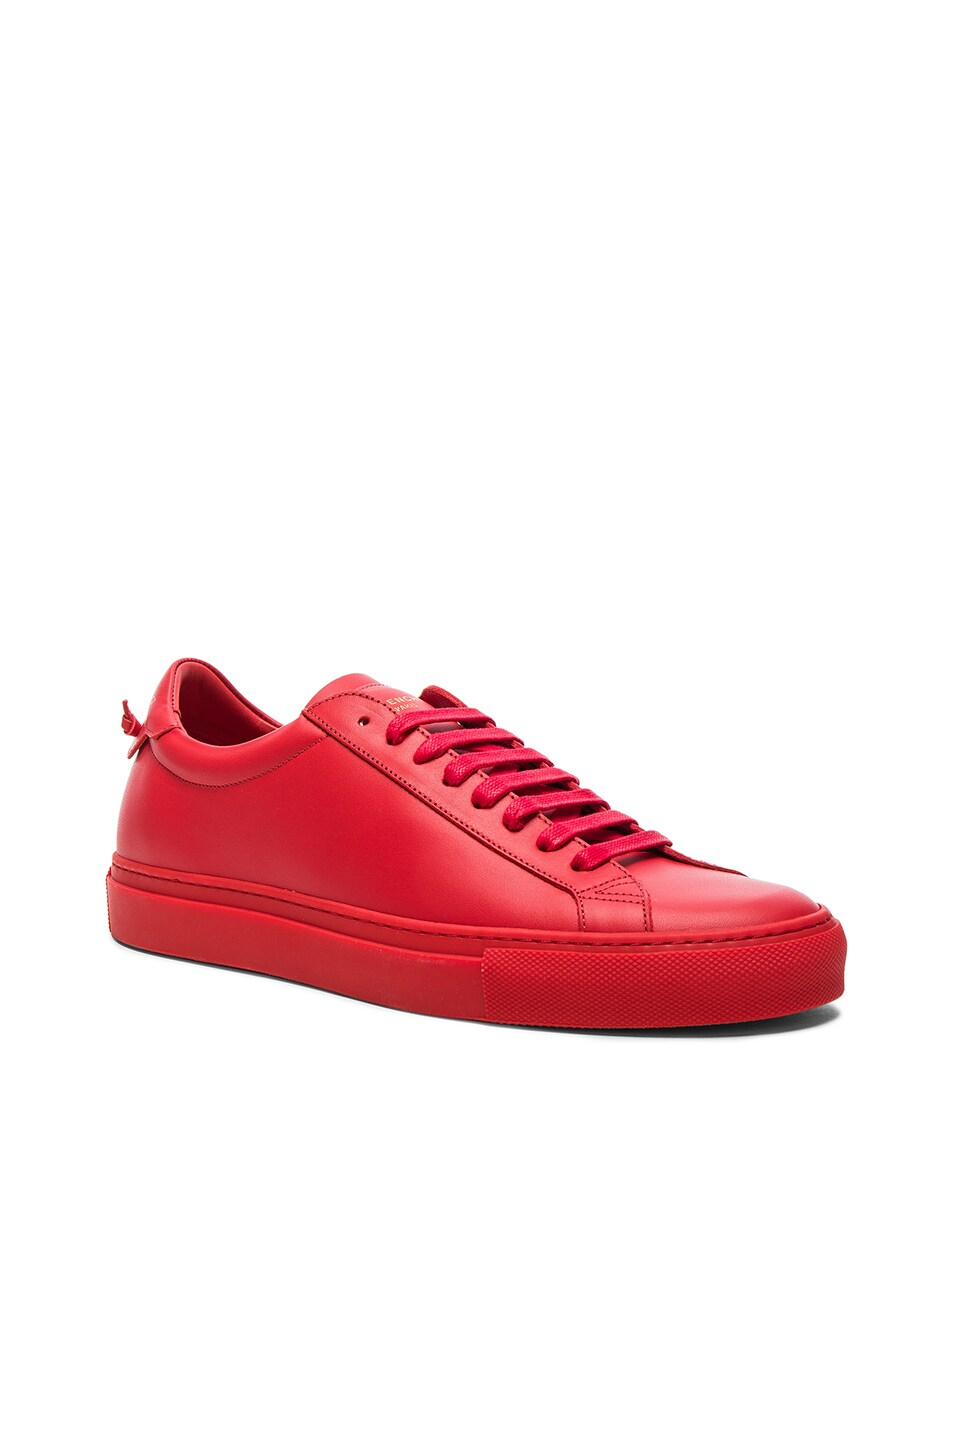 Image 1 of Givenchy Urban Street Low Top Sneakers in Red